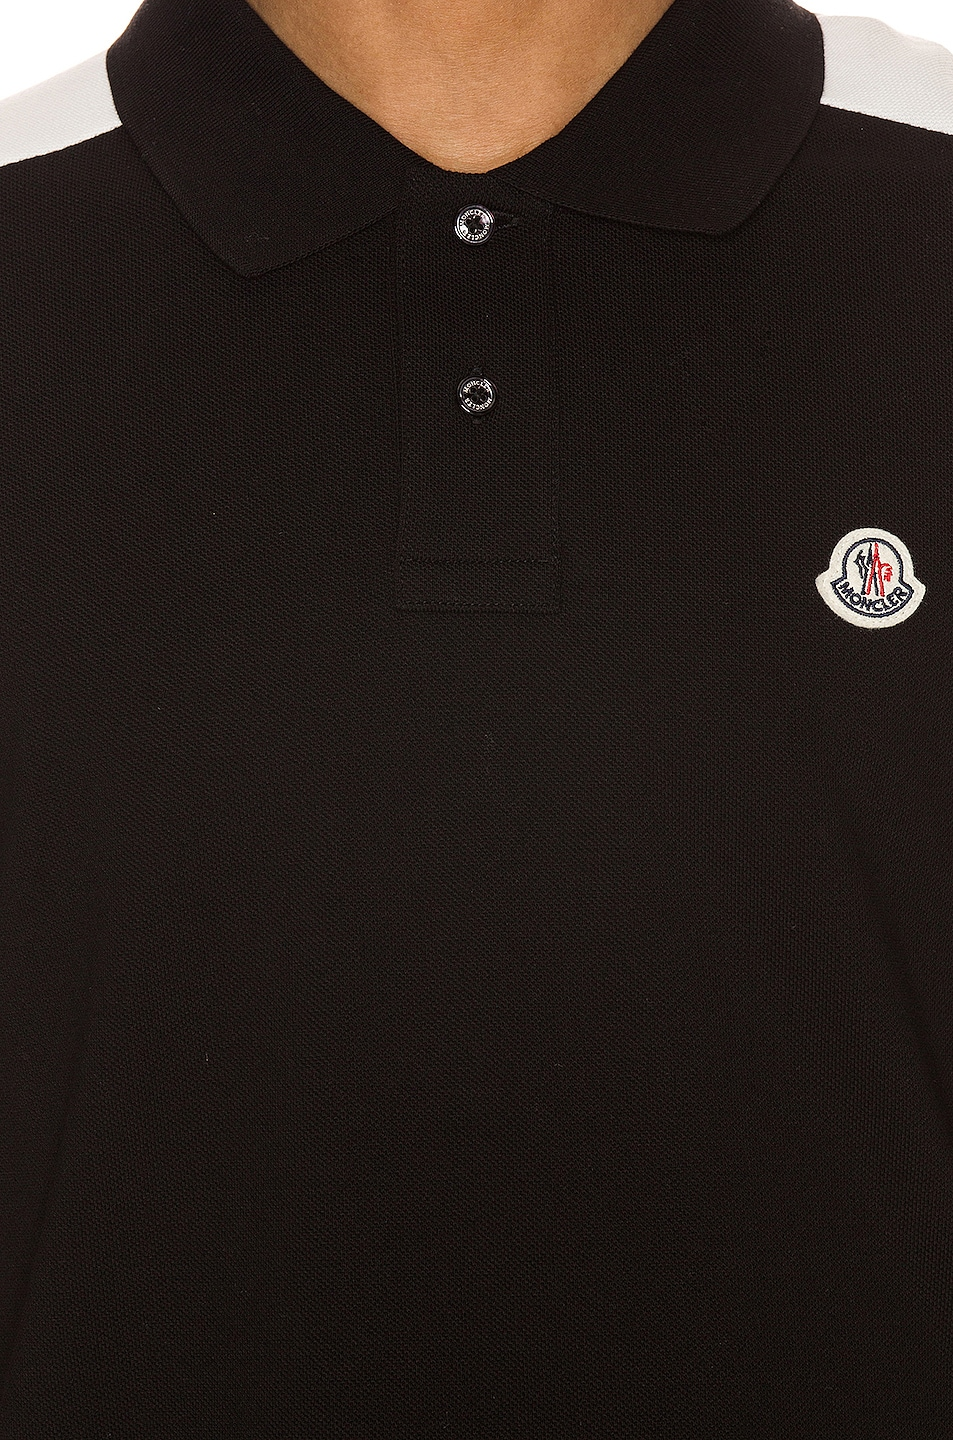 Image 5 of Moncler Polo in Black